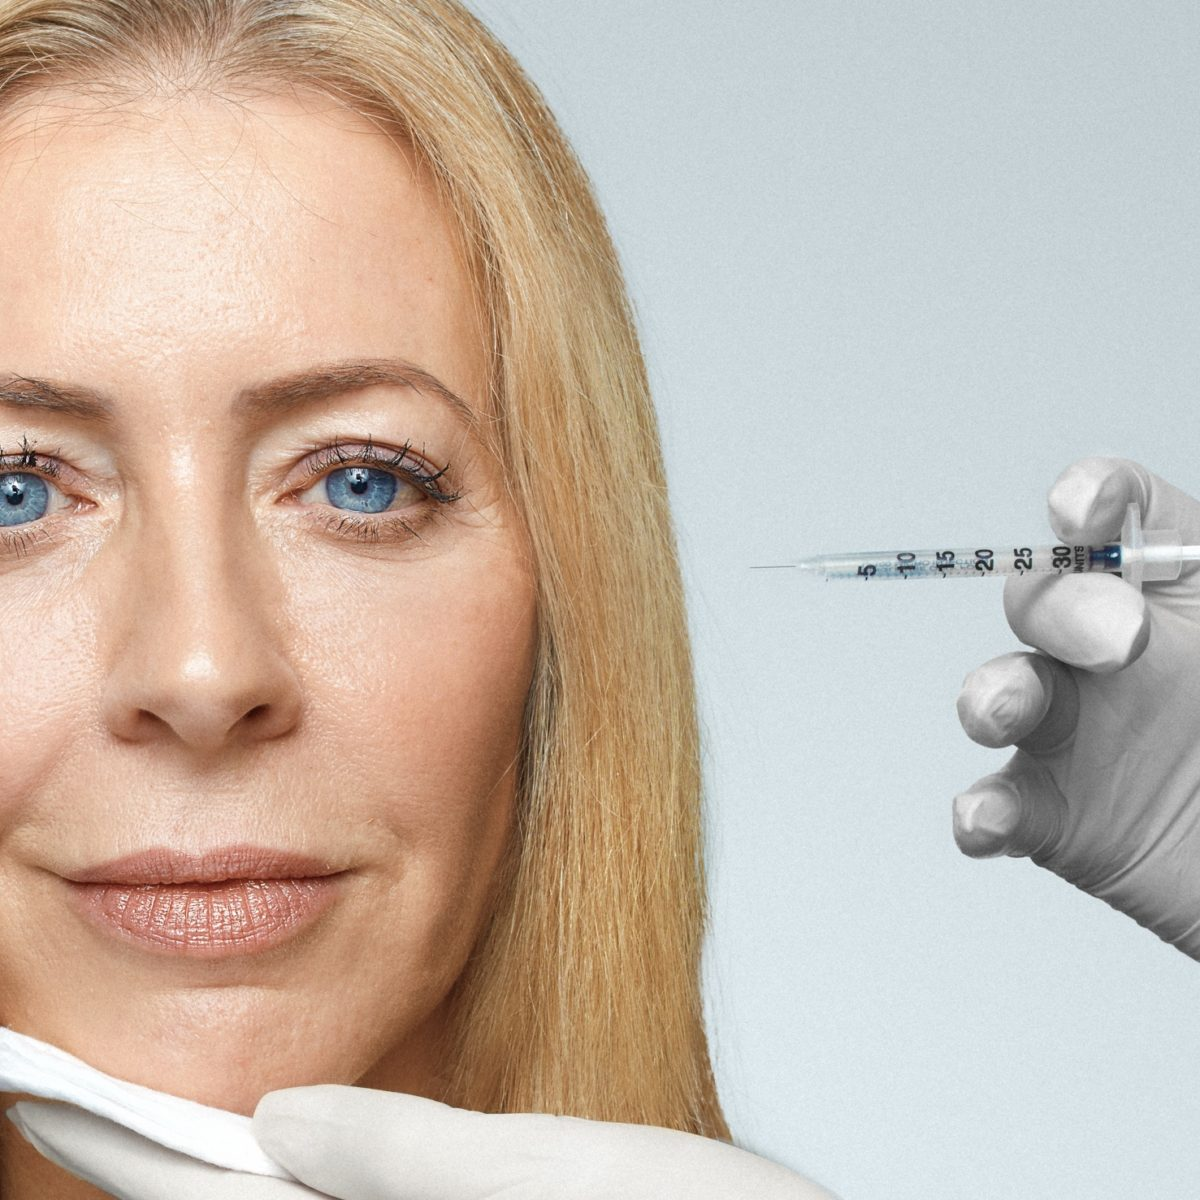 Should you try Botox and fillers at Superdrug?